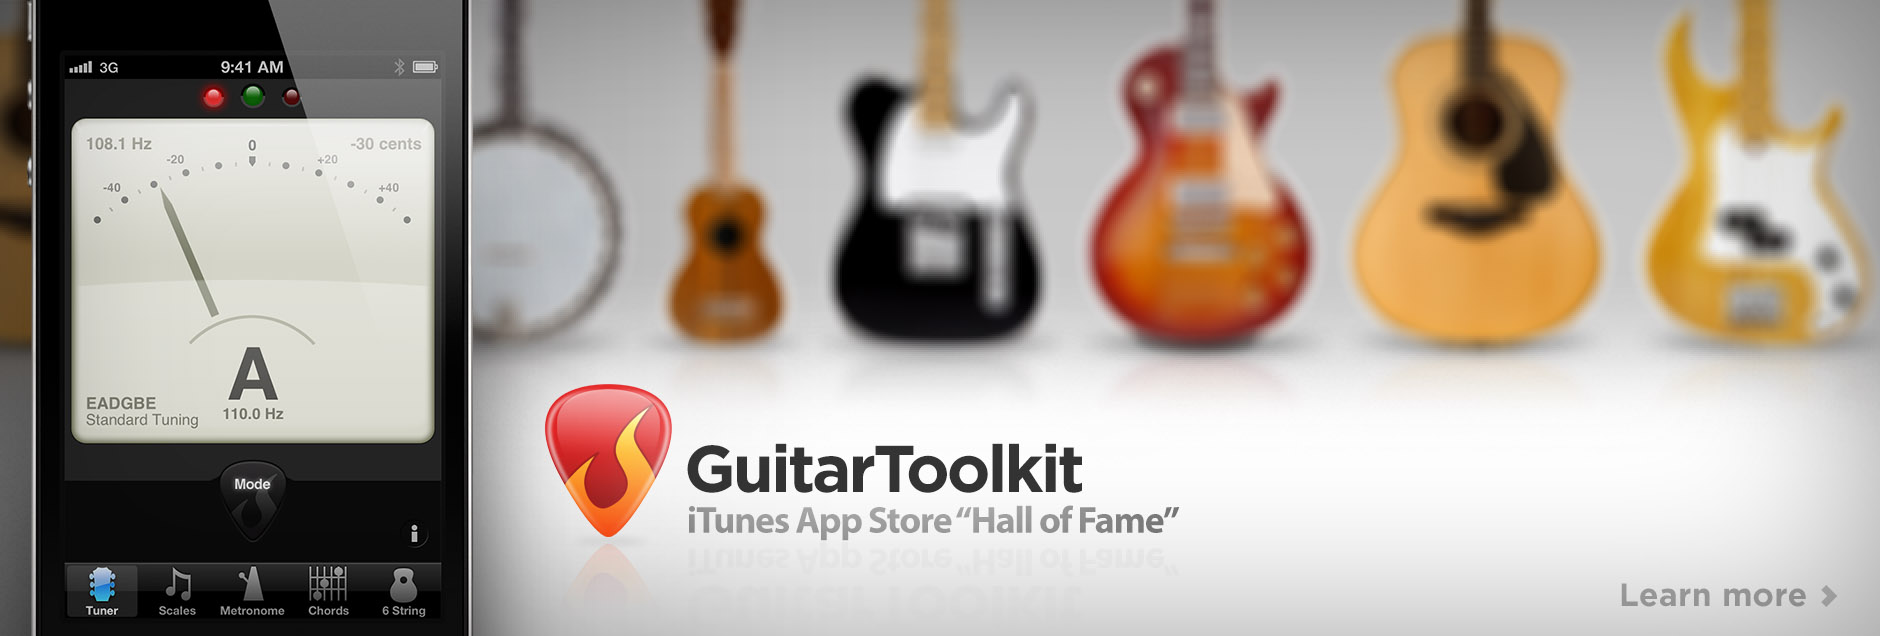 GuitarToolkit - Lighten your gig bag